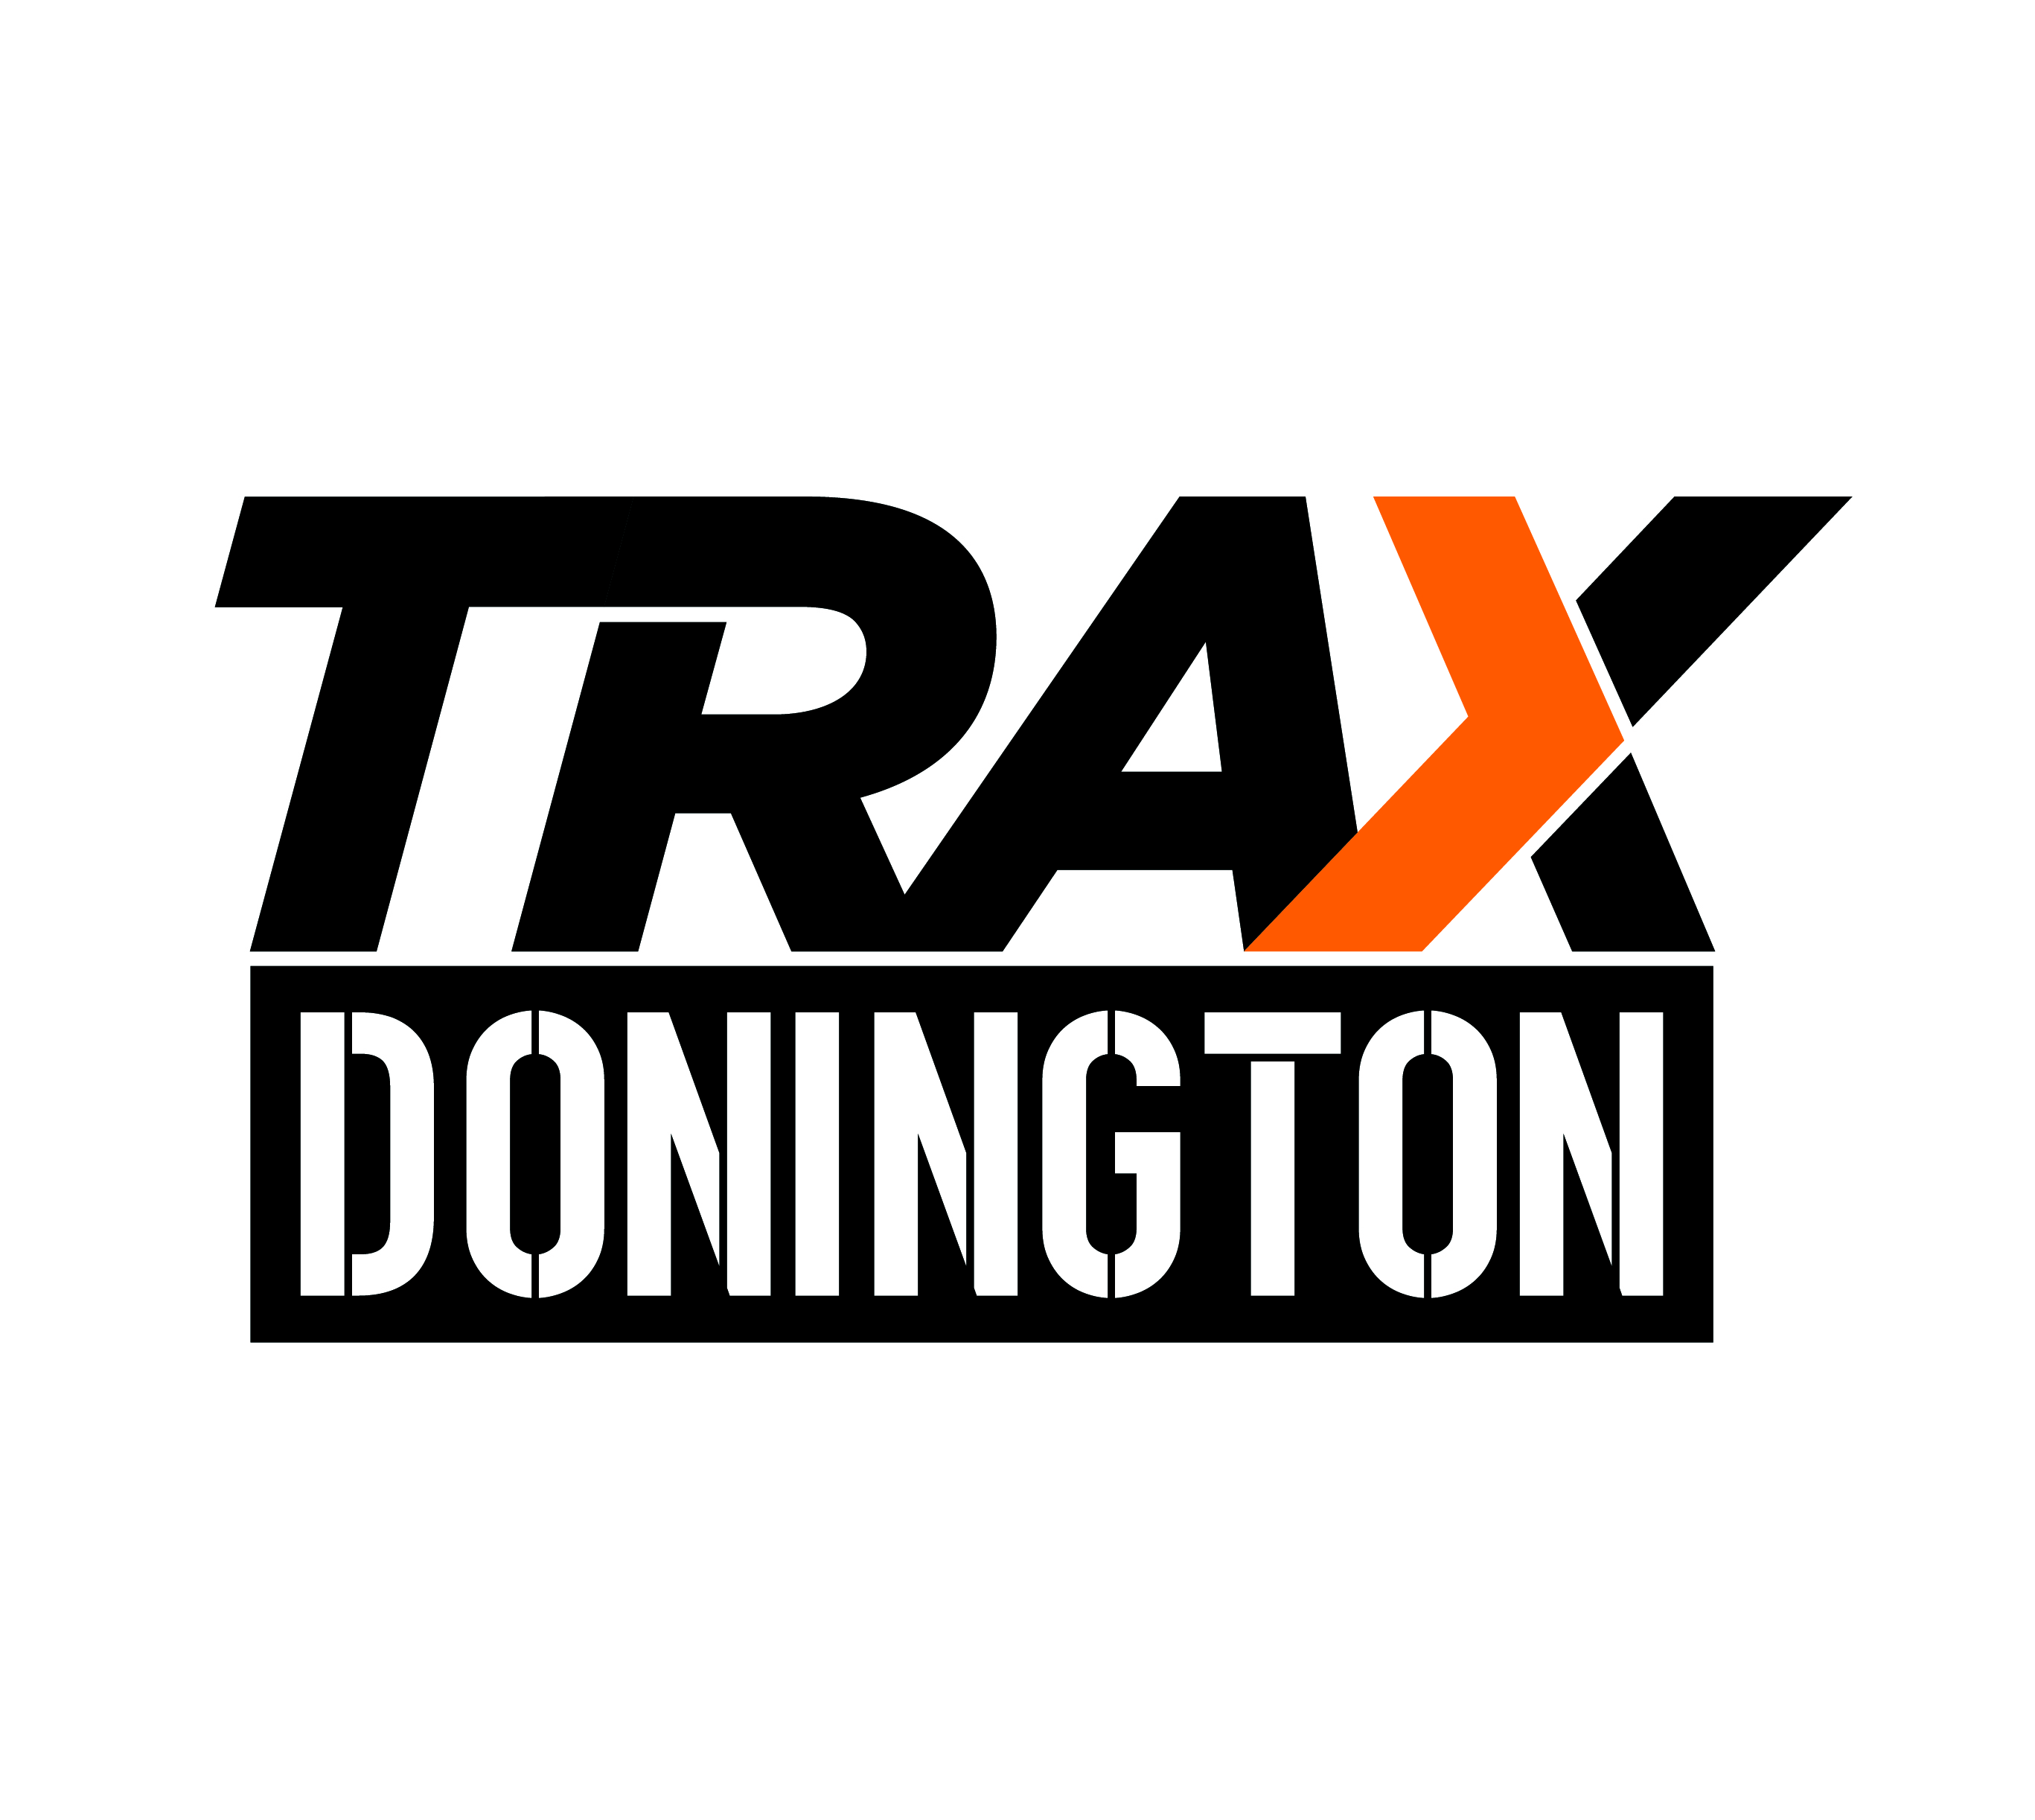 Meet the Reis team at Trax Donington 2019!